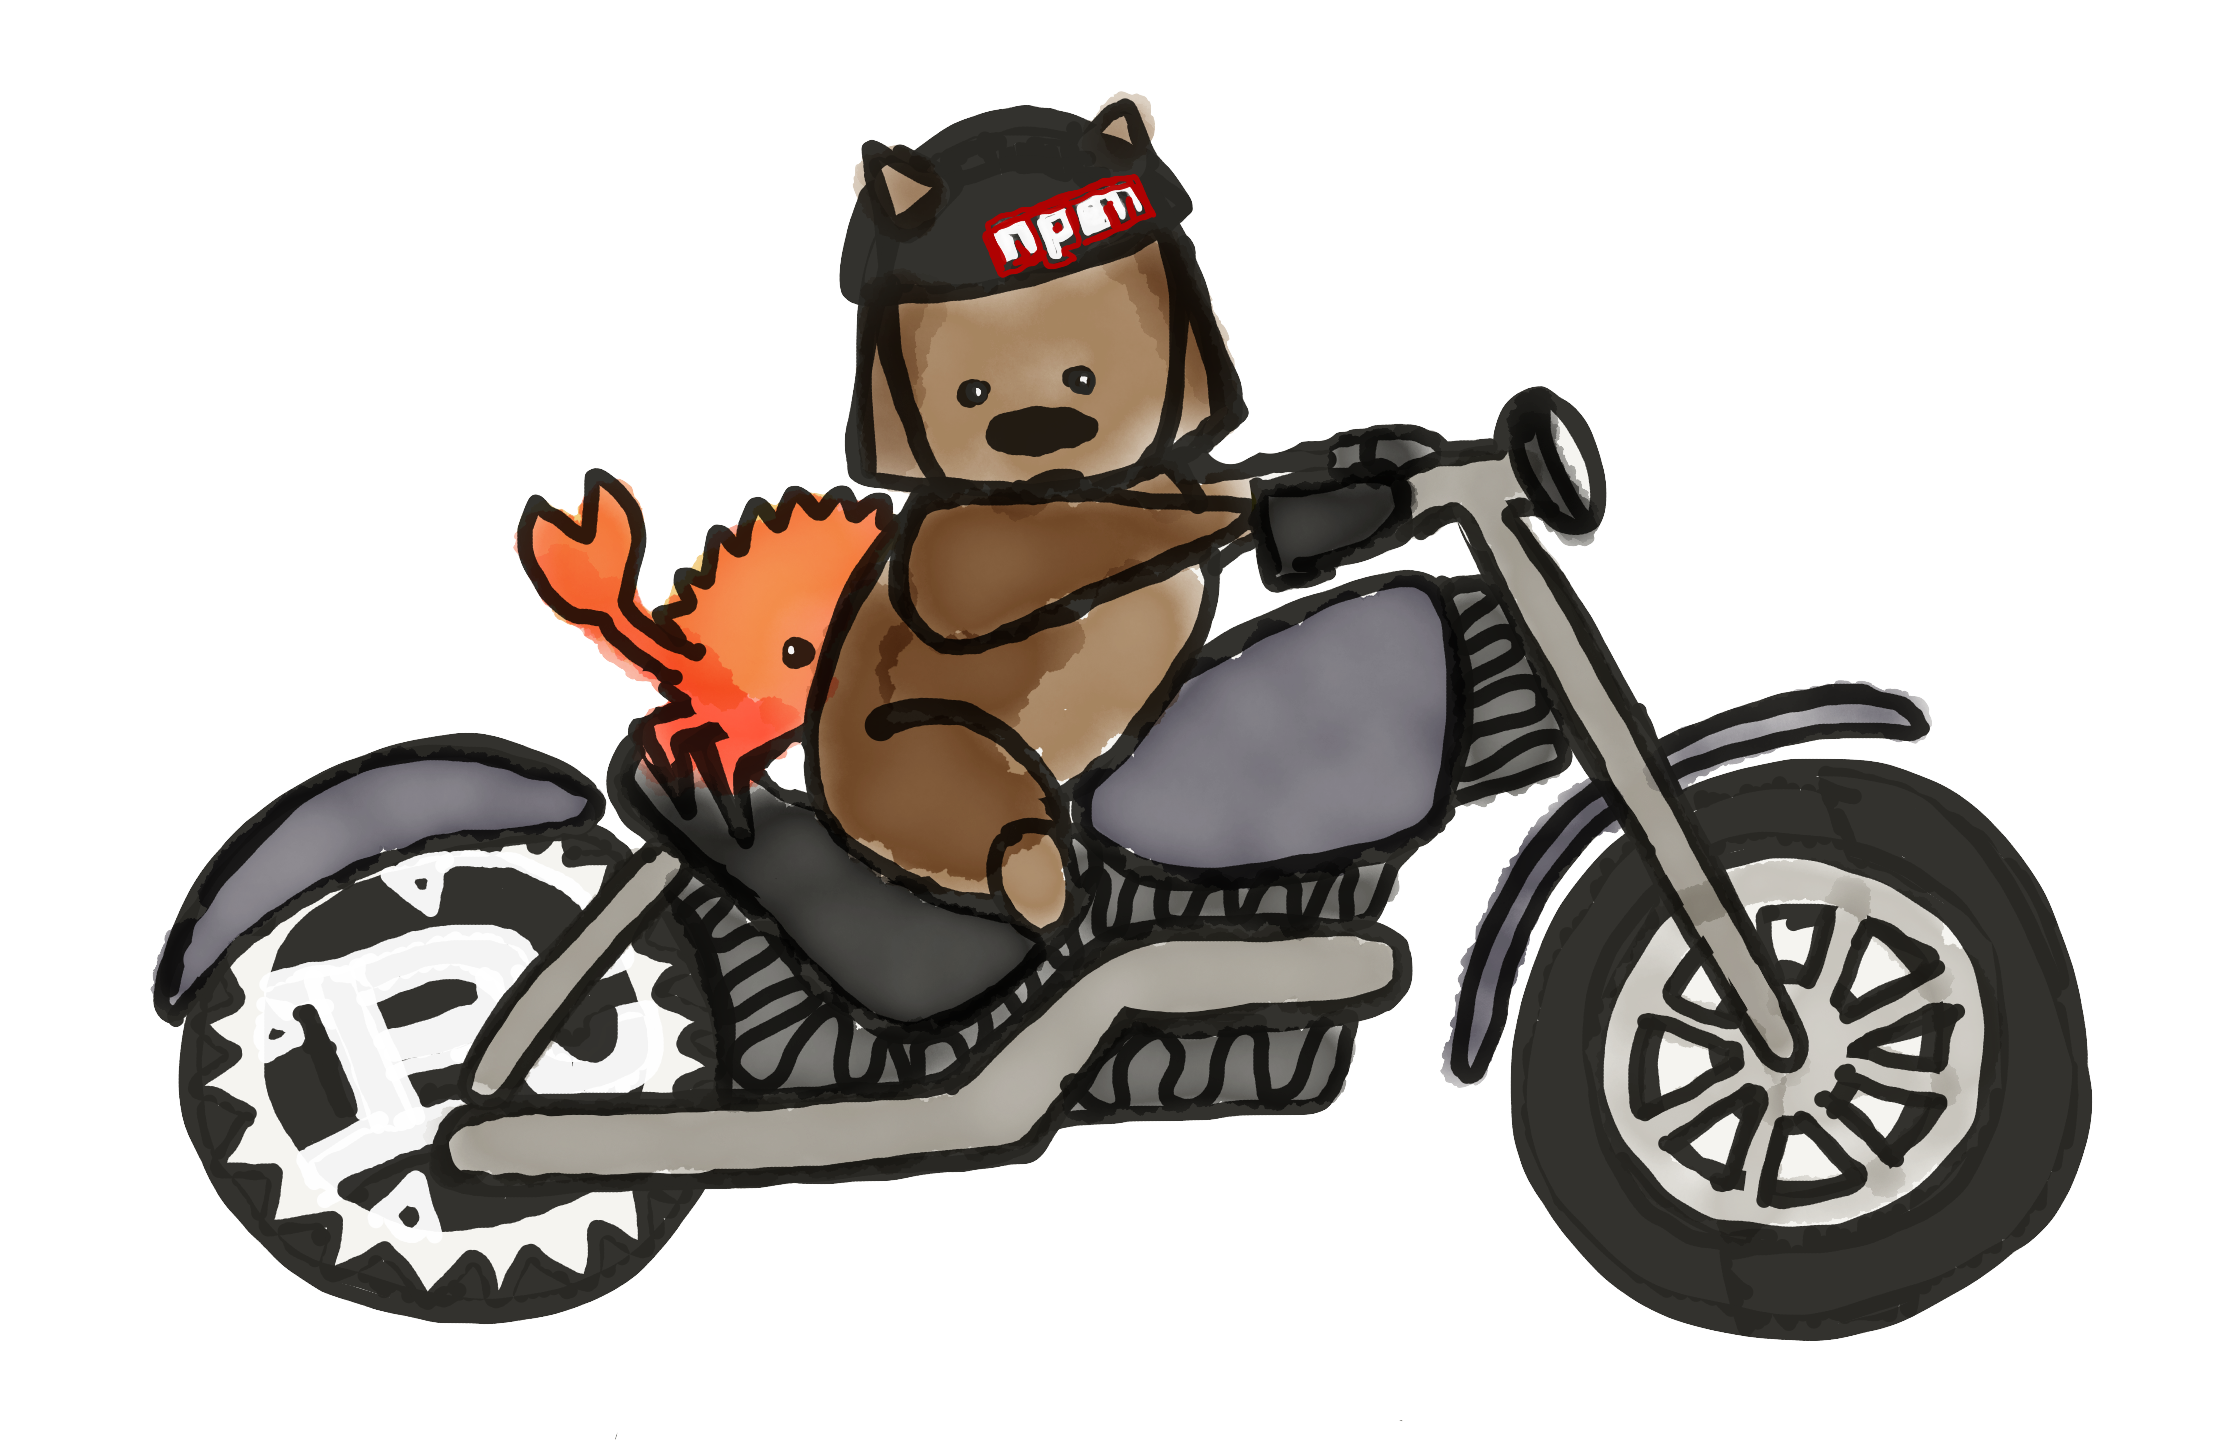 The ag deck motorcycle. Wheel clipart burnout